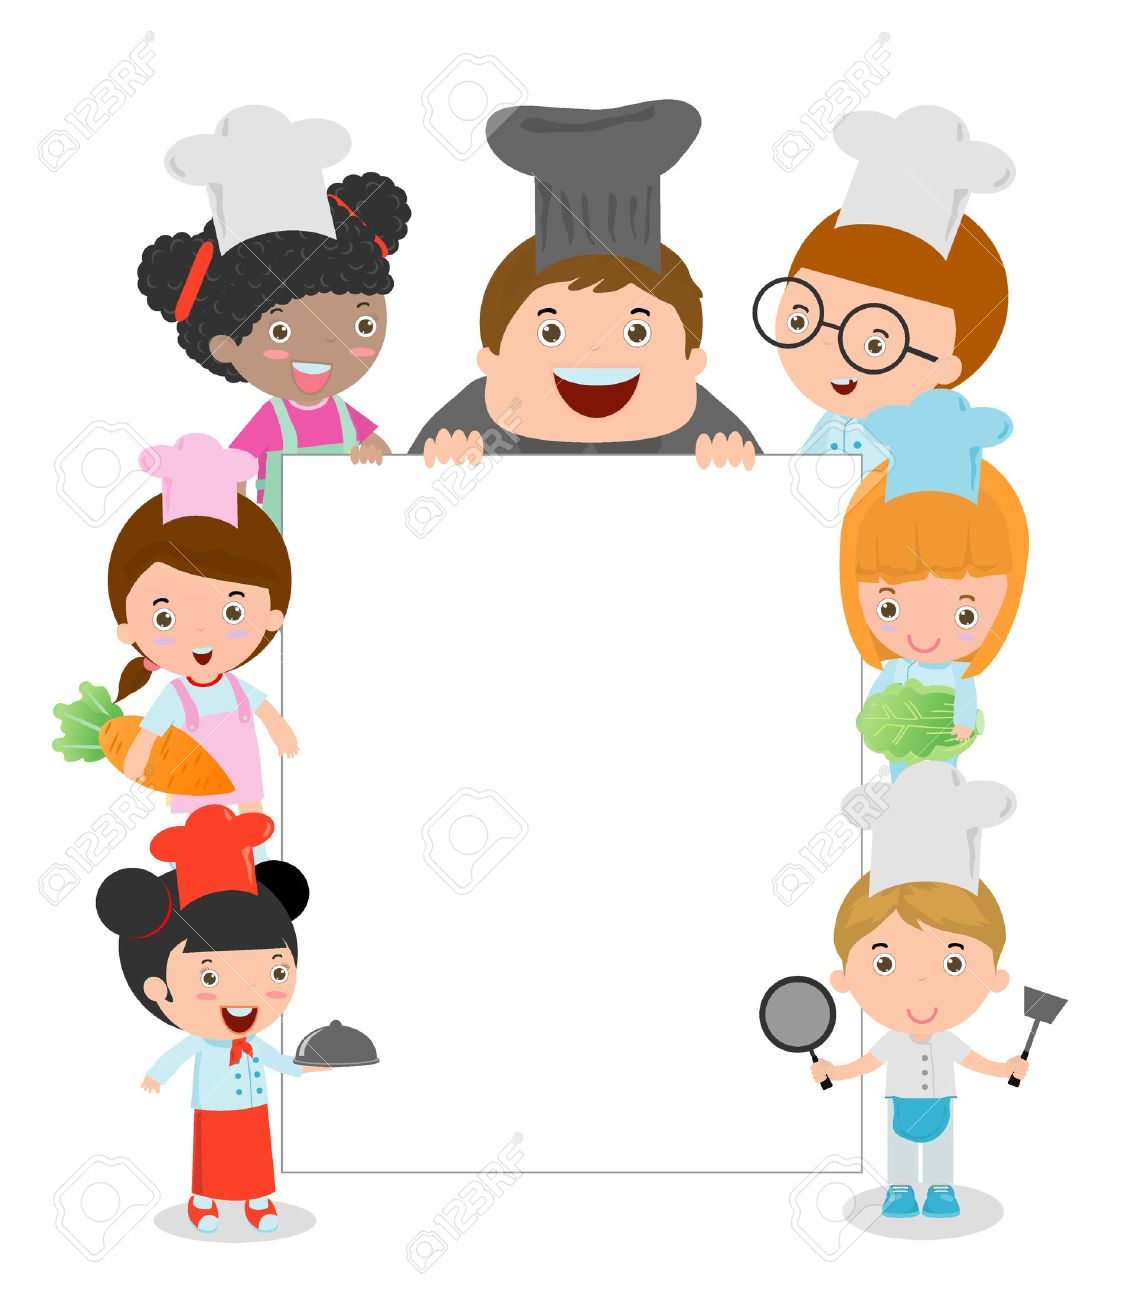 Kids Cooking Clipart | Free download on ClipArtMag